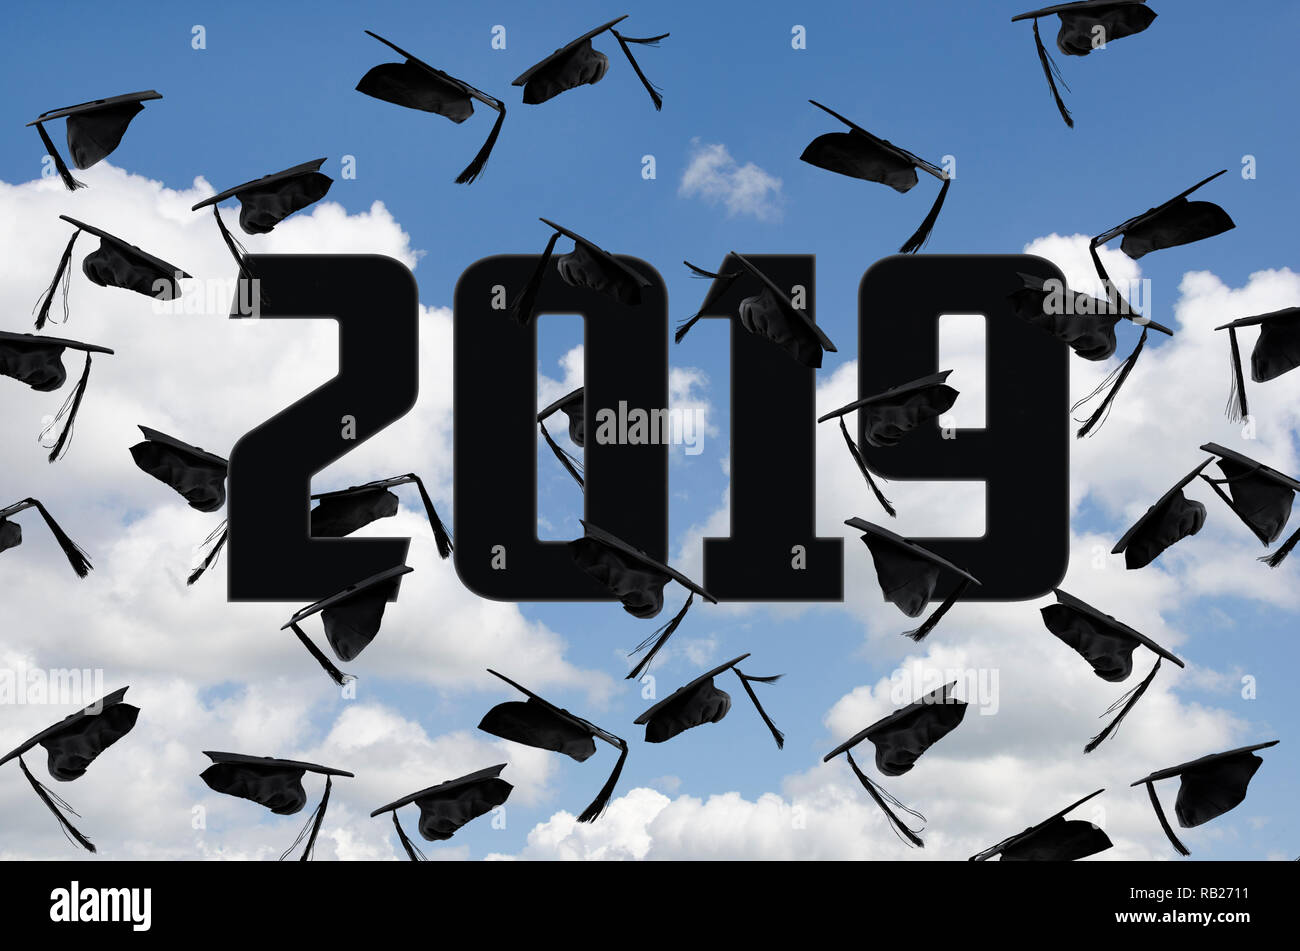 black graduation caps in summer sky with white clouds with year 2019 text - Stock Image